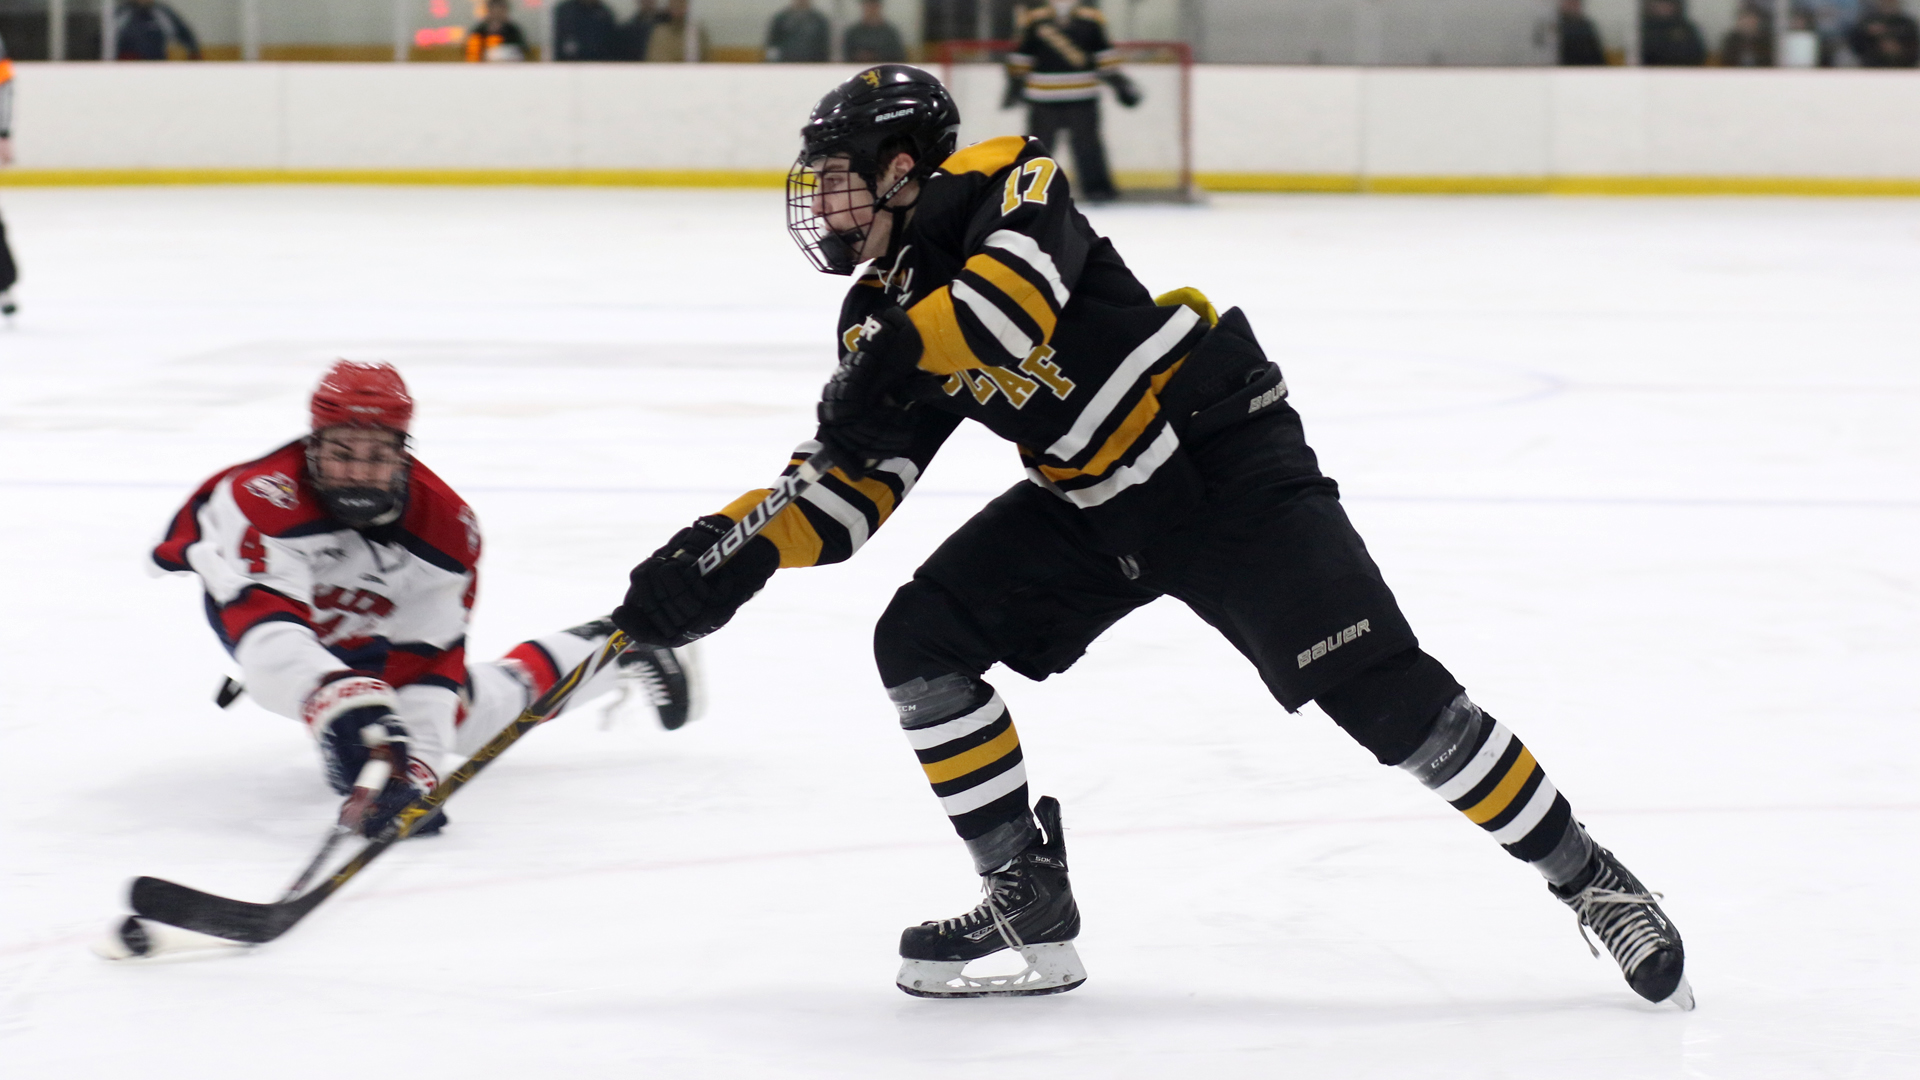 Mens hockey suffers 3 2 loss to smu the official website of st caleb callaway st olaf publicscrutiny Images